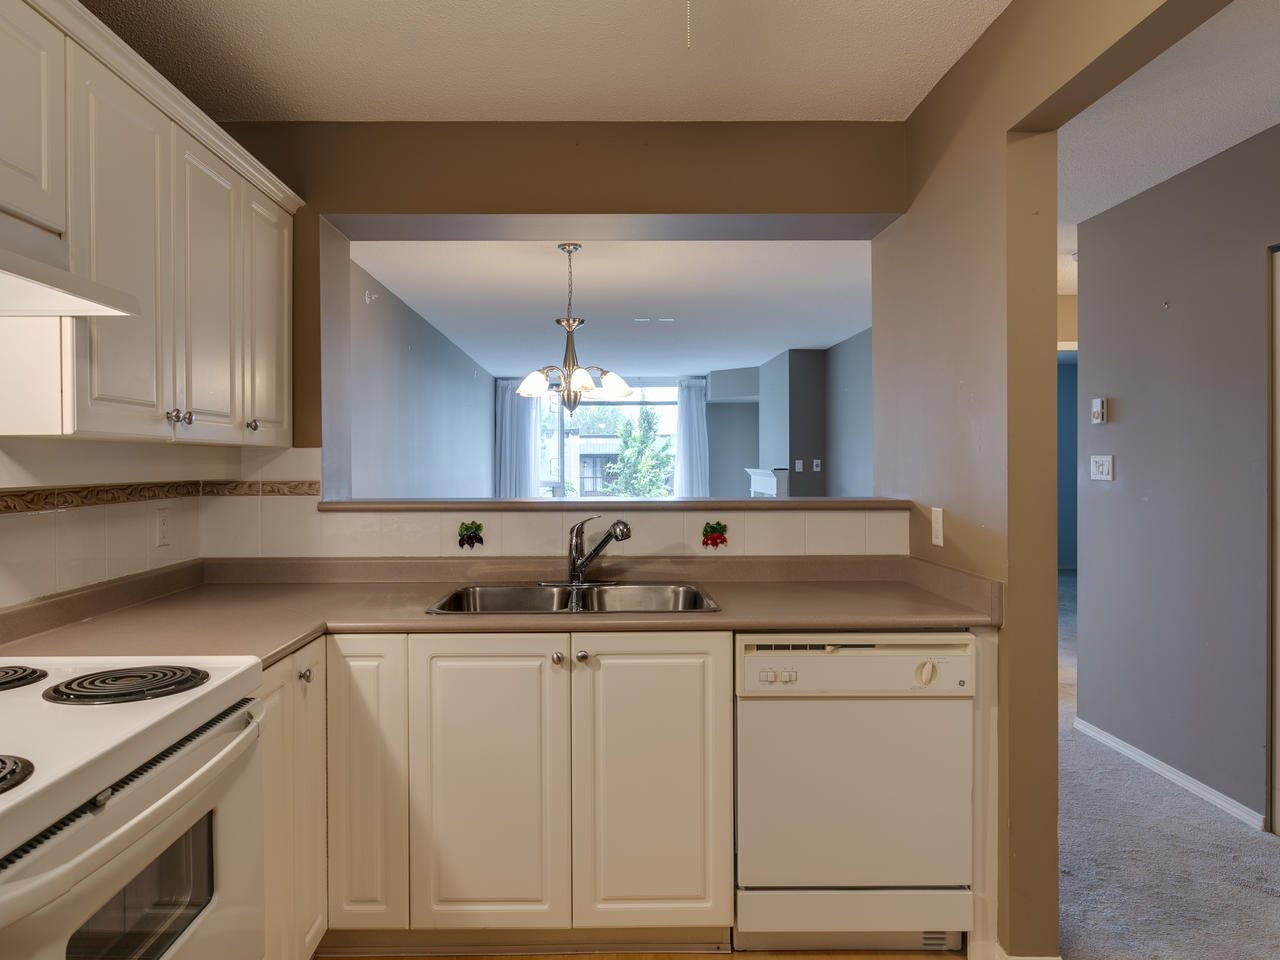 """Photo 8: Photos: 404 12148 224 Street in Maple Ridge: East Central Condo for sale in """"Panorama"""" : MLS®# R2461995"""